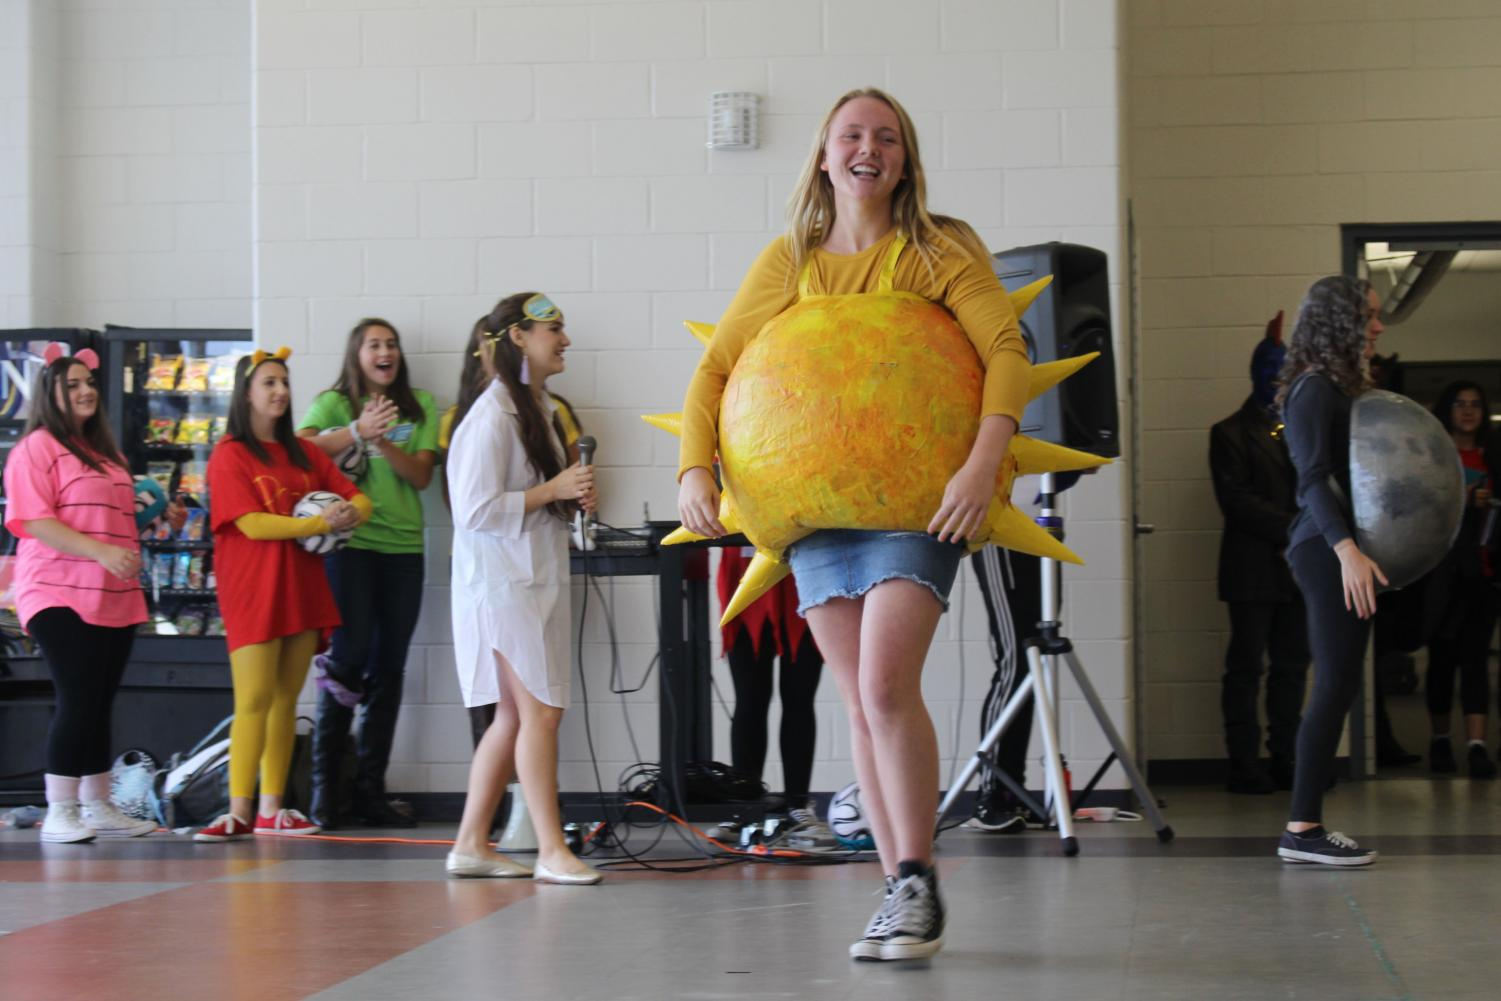 Dressed+as+the+2017+solar+eclipse%2C+juniors+Caroline+Monaghan+of+Middletown+and+Emma+Hecht+of+Wall+took+home+Best+Couple+at+the+Halloween+parade.+Monaghan+and+Hecht+recorded+an+audio+track+that+played+as+they+walked+across+the+cafeteria.